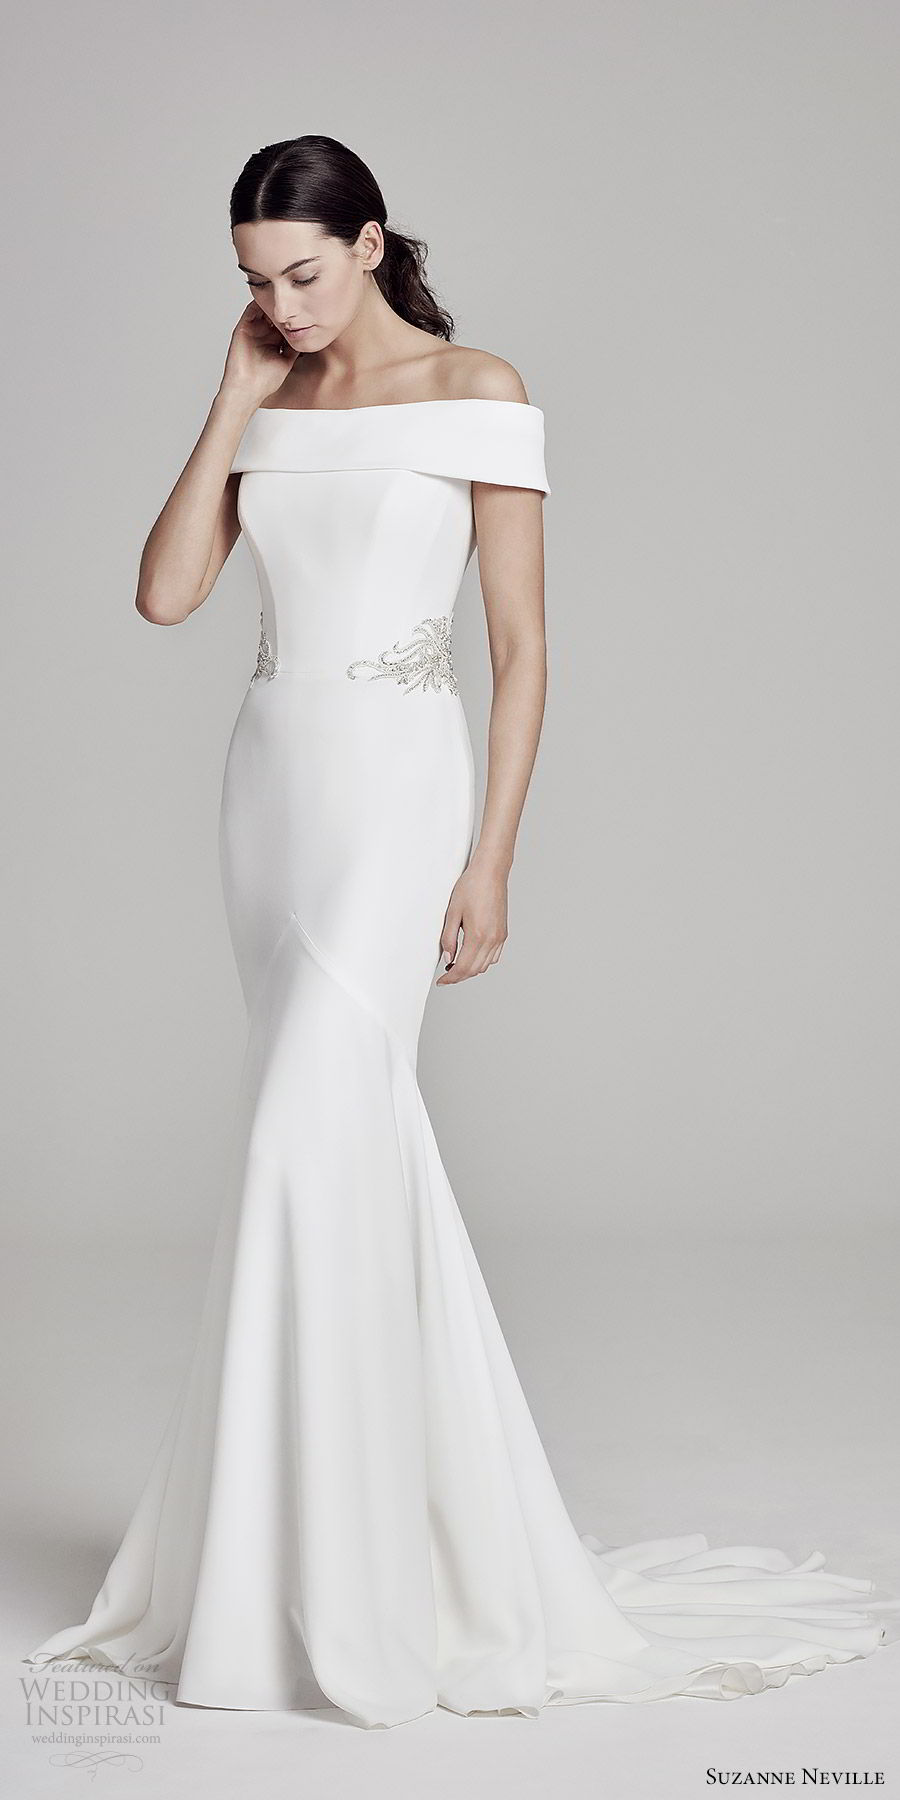 suzanne neville bridal 2019 off shoulder straight across embellished waist sheath wedding dress (orianna) chapel train modern clean elegant mv